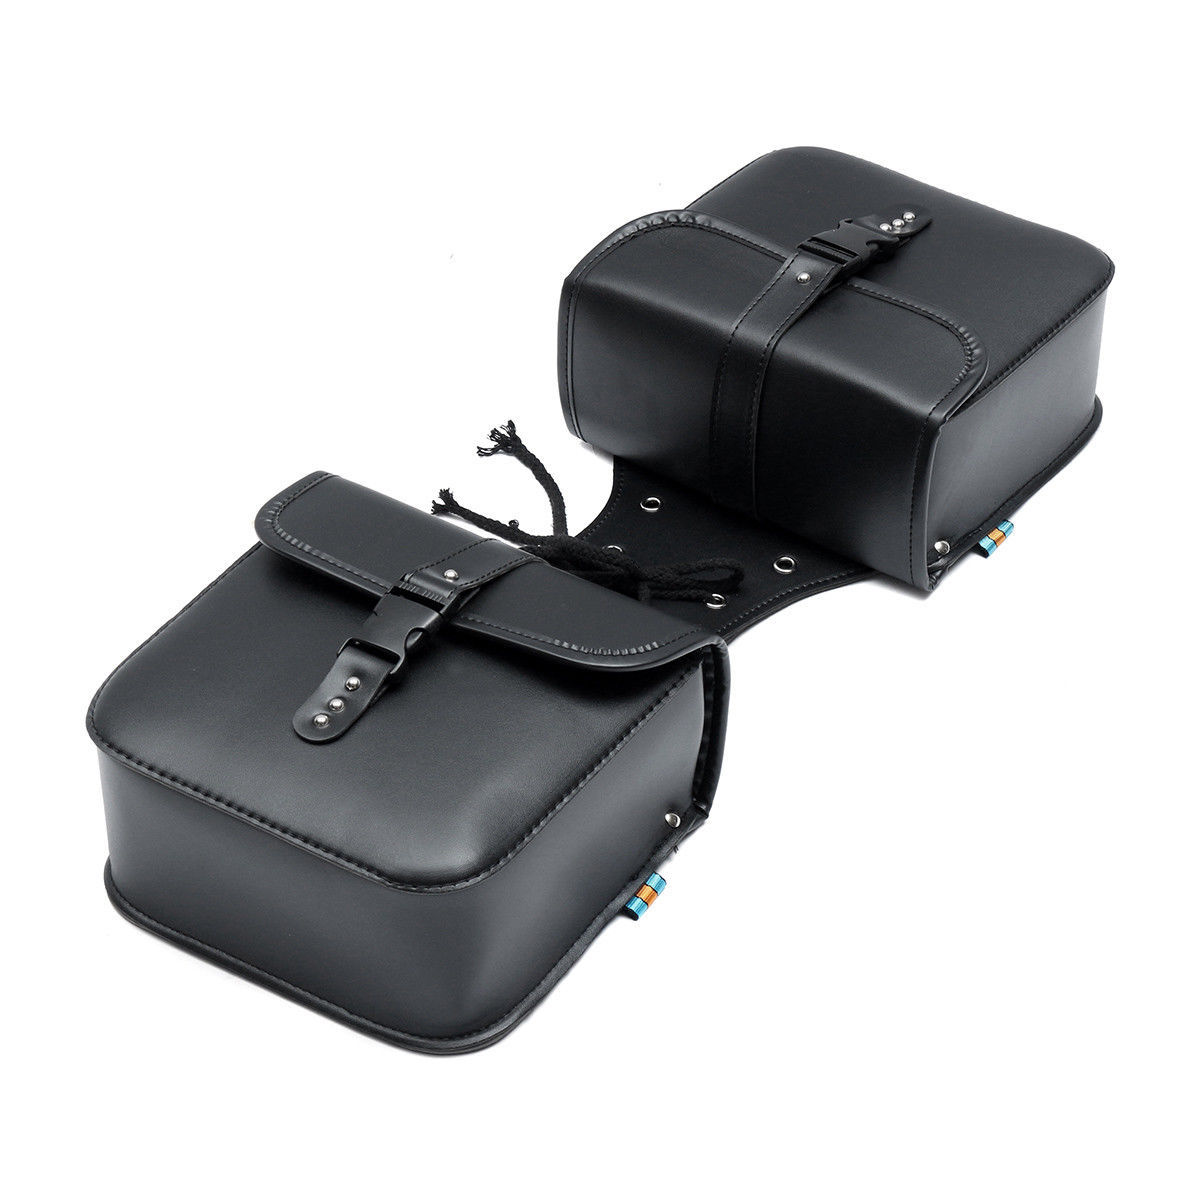 2Pcs Universal Motorcycle Saddle Tool Bag Side Pannier Luggage Bags PU Leather allinonehere.com